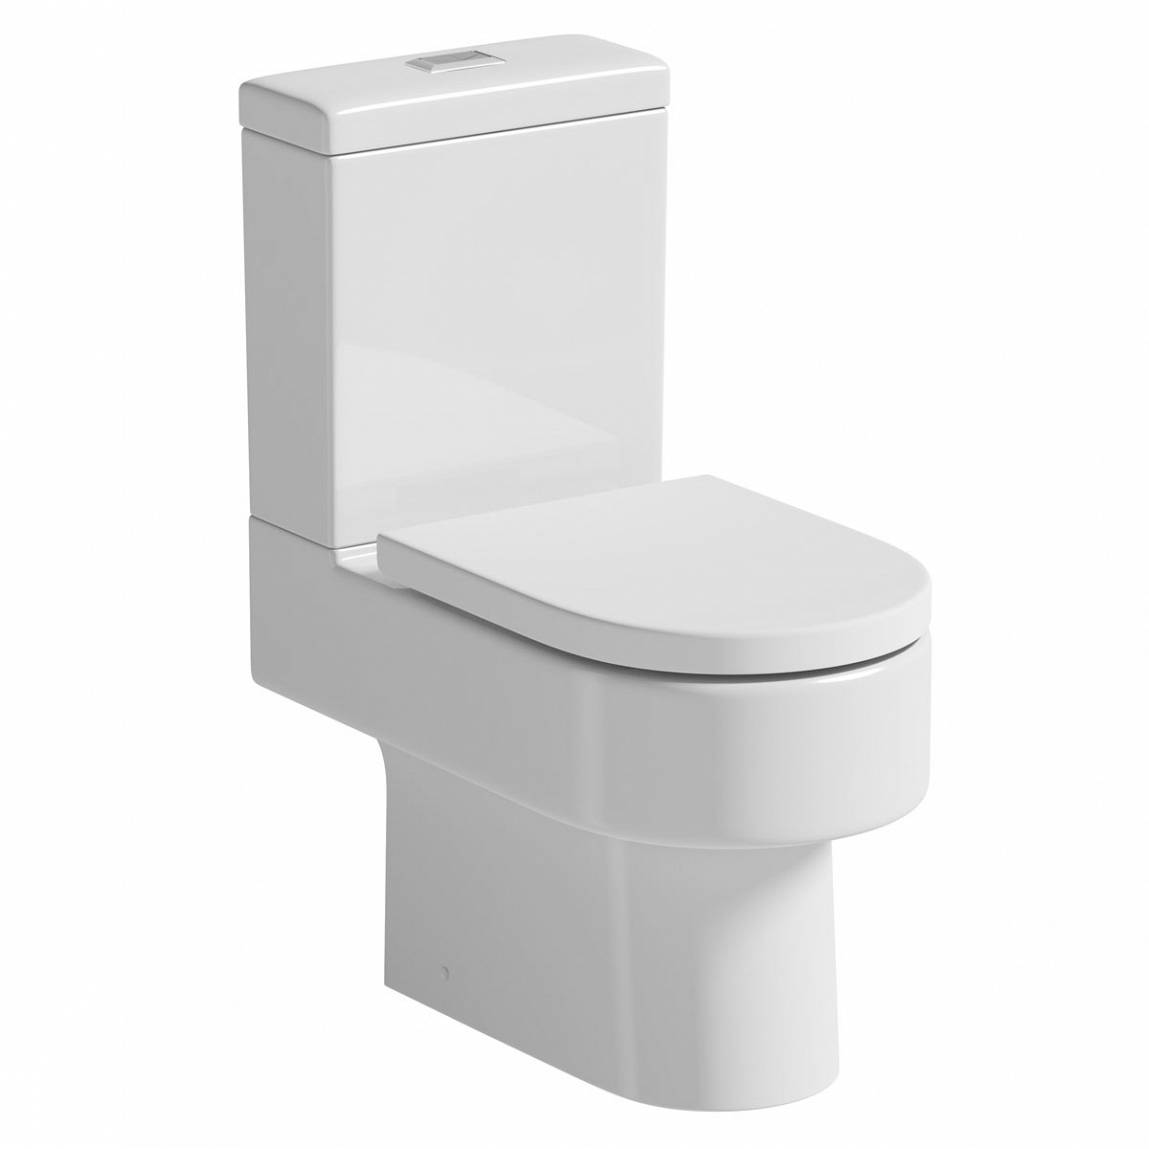 Image of Brooklyn Close Coupled Toilet inc Luxury Soft Close Seat